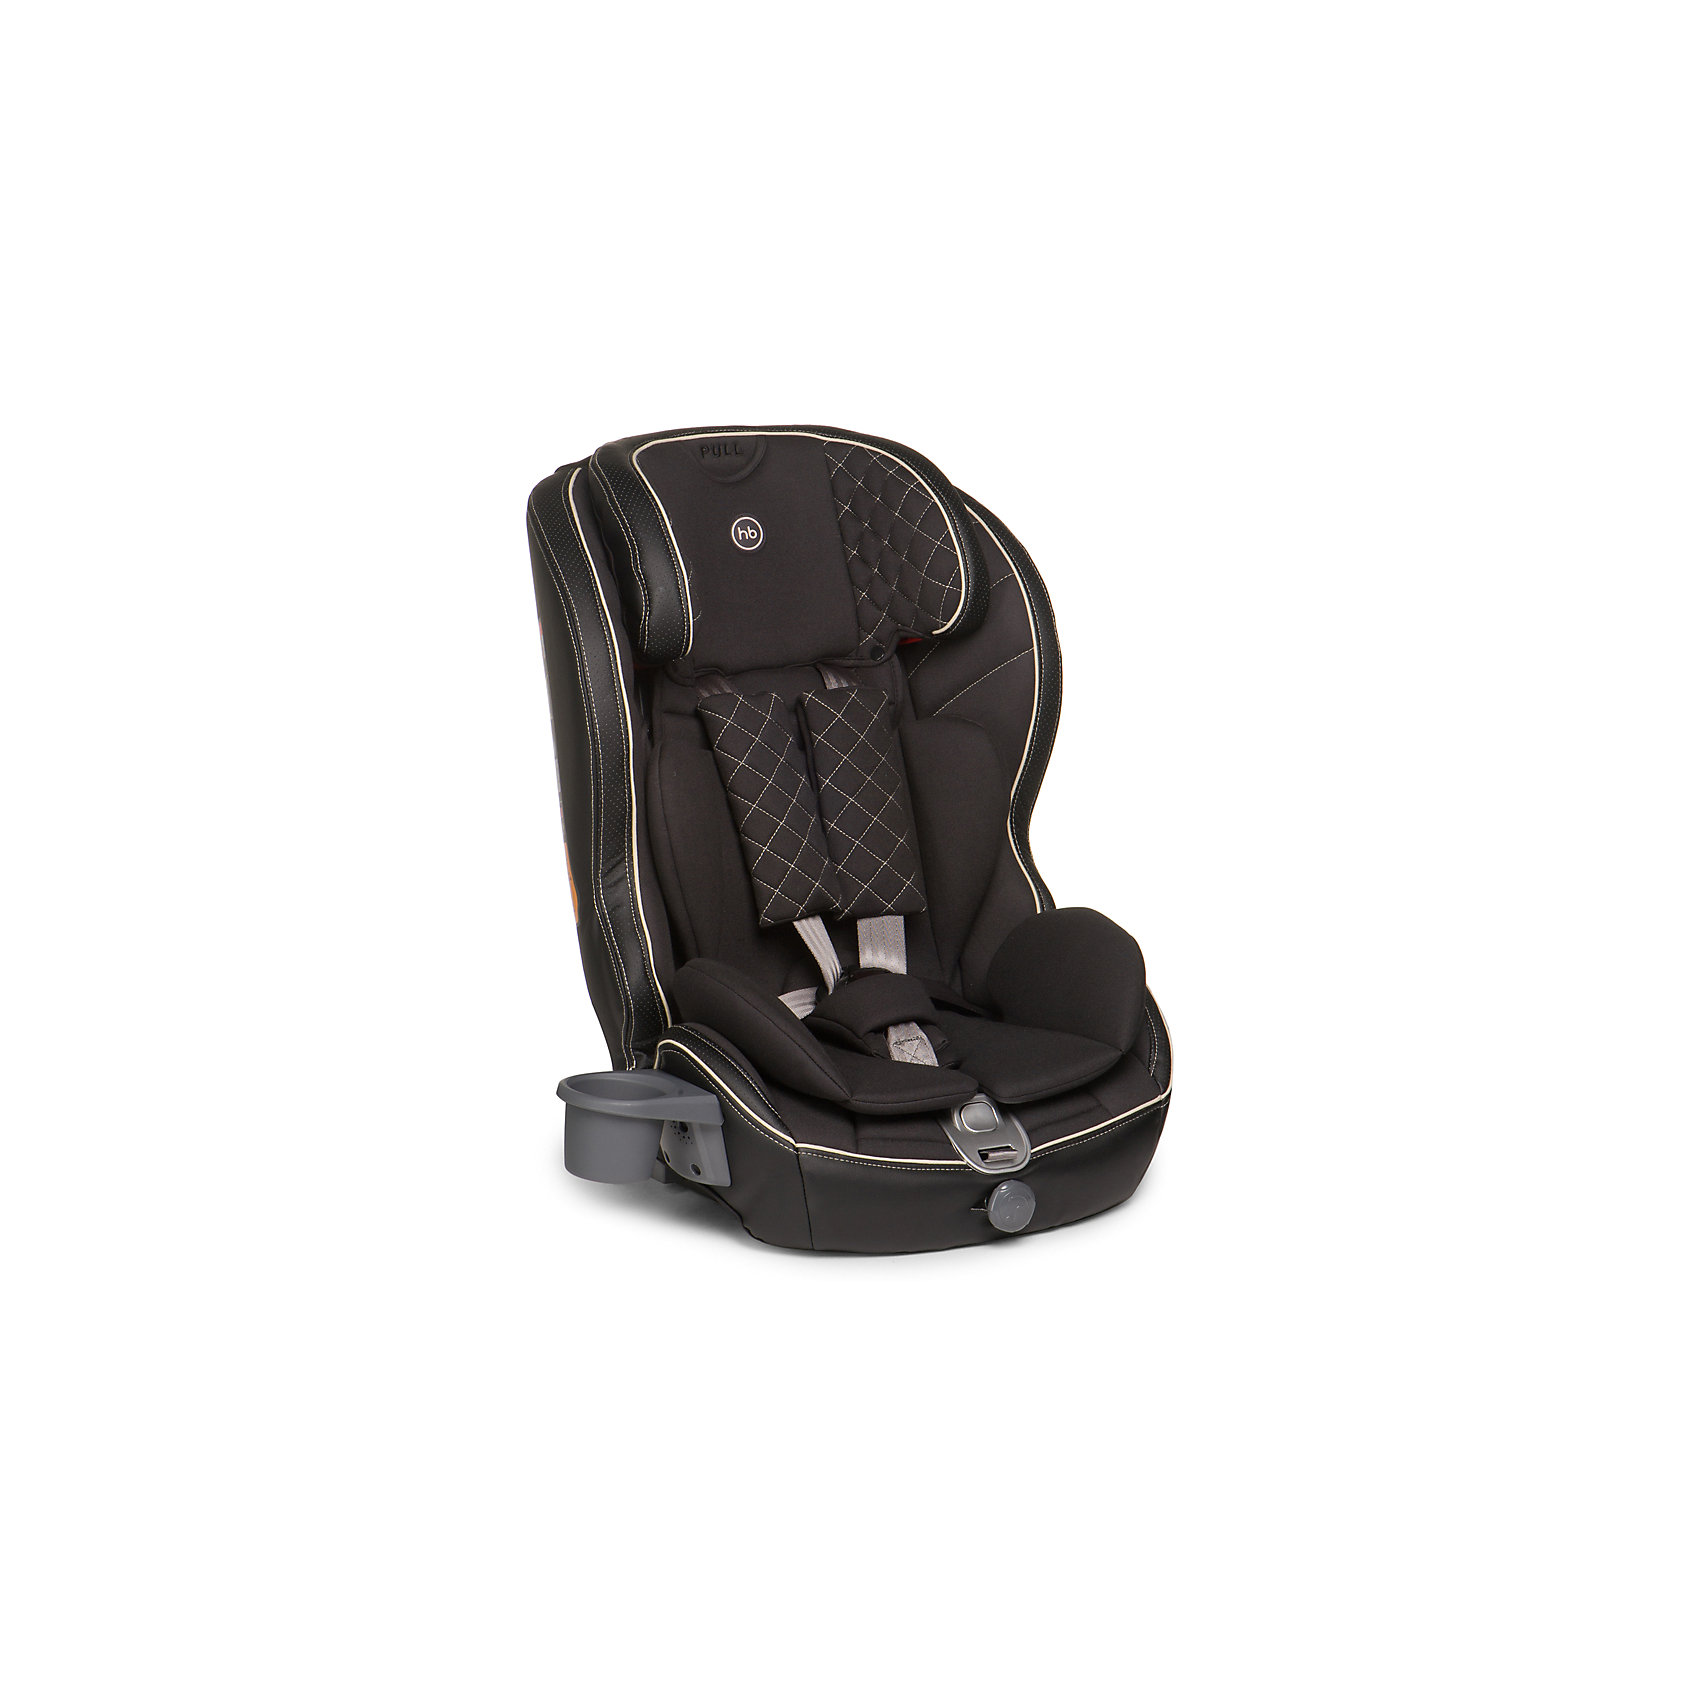 Happy Baby Автокресло Mustang Isofix, 9-36 кг., Happy Baby, чёрный автокресло happy baby happy baby автокресло mustang brown